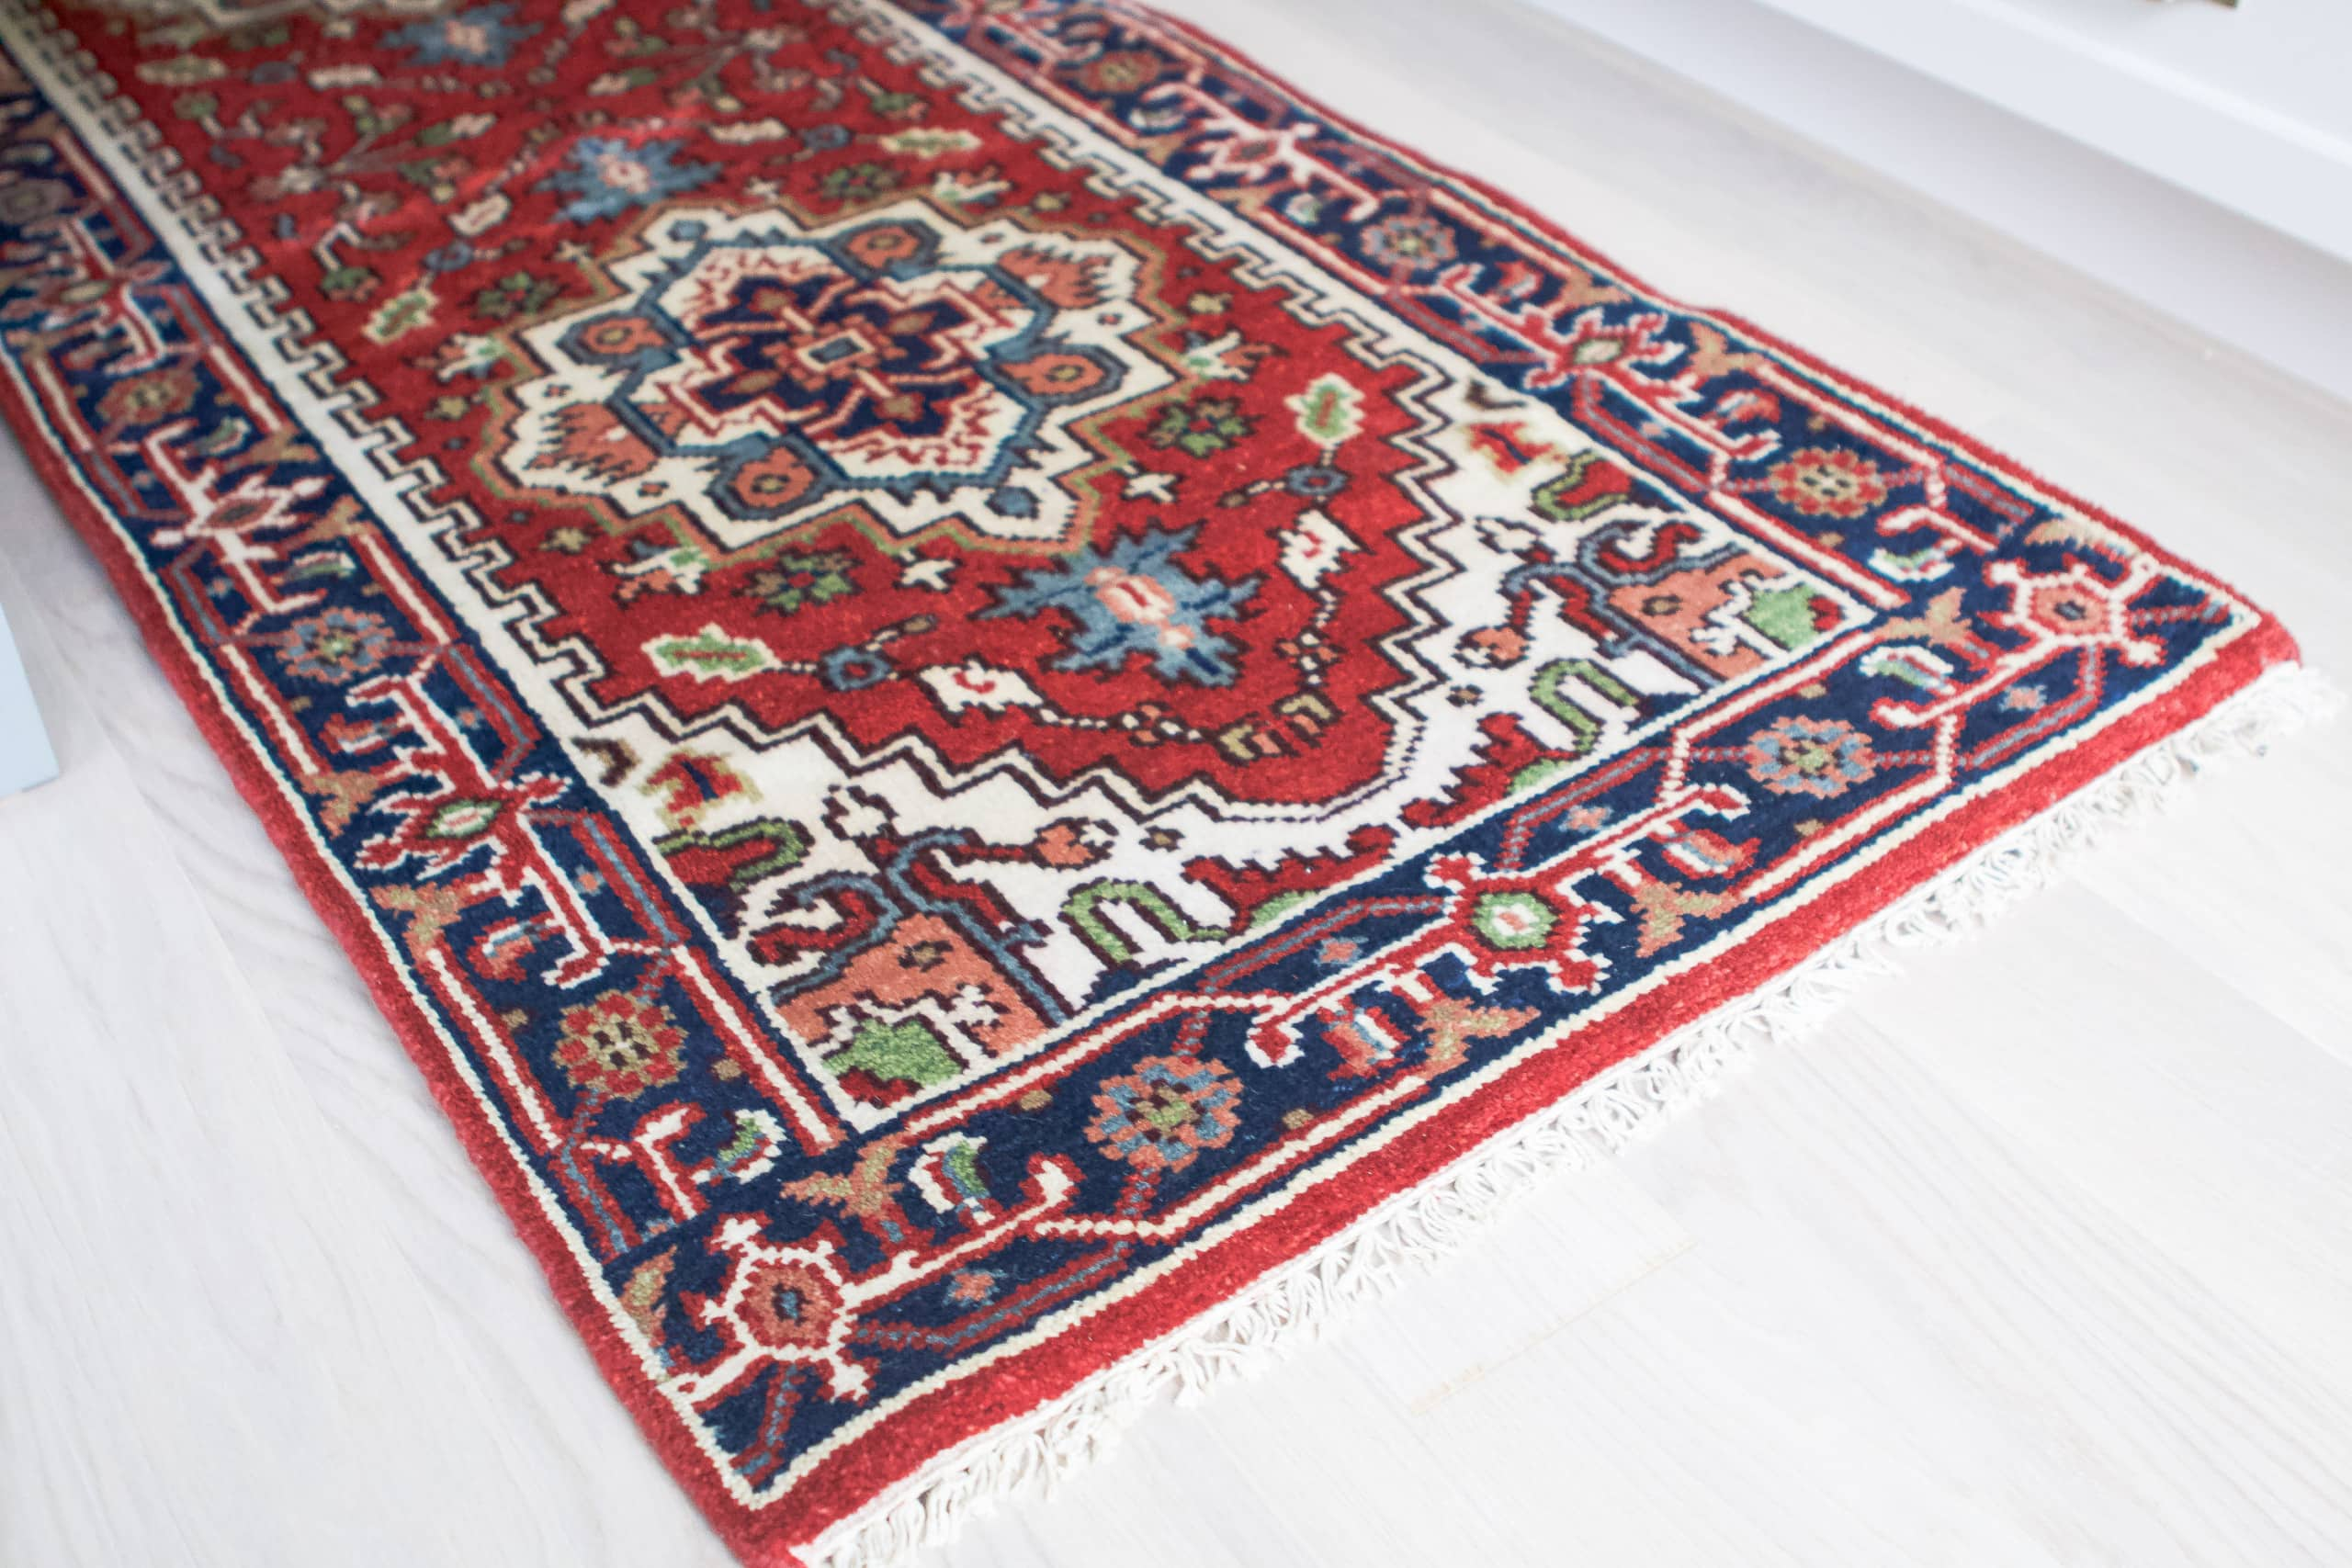 A colorful rug in the kitchen